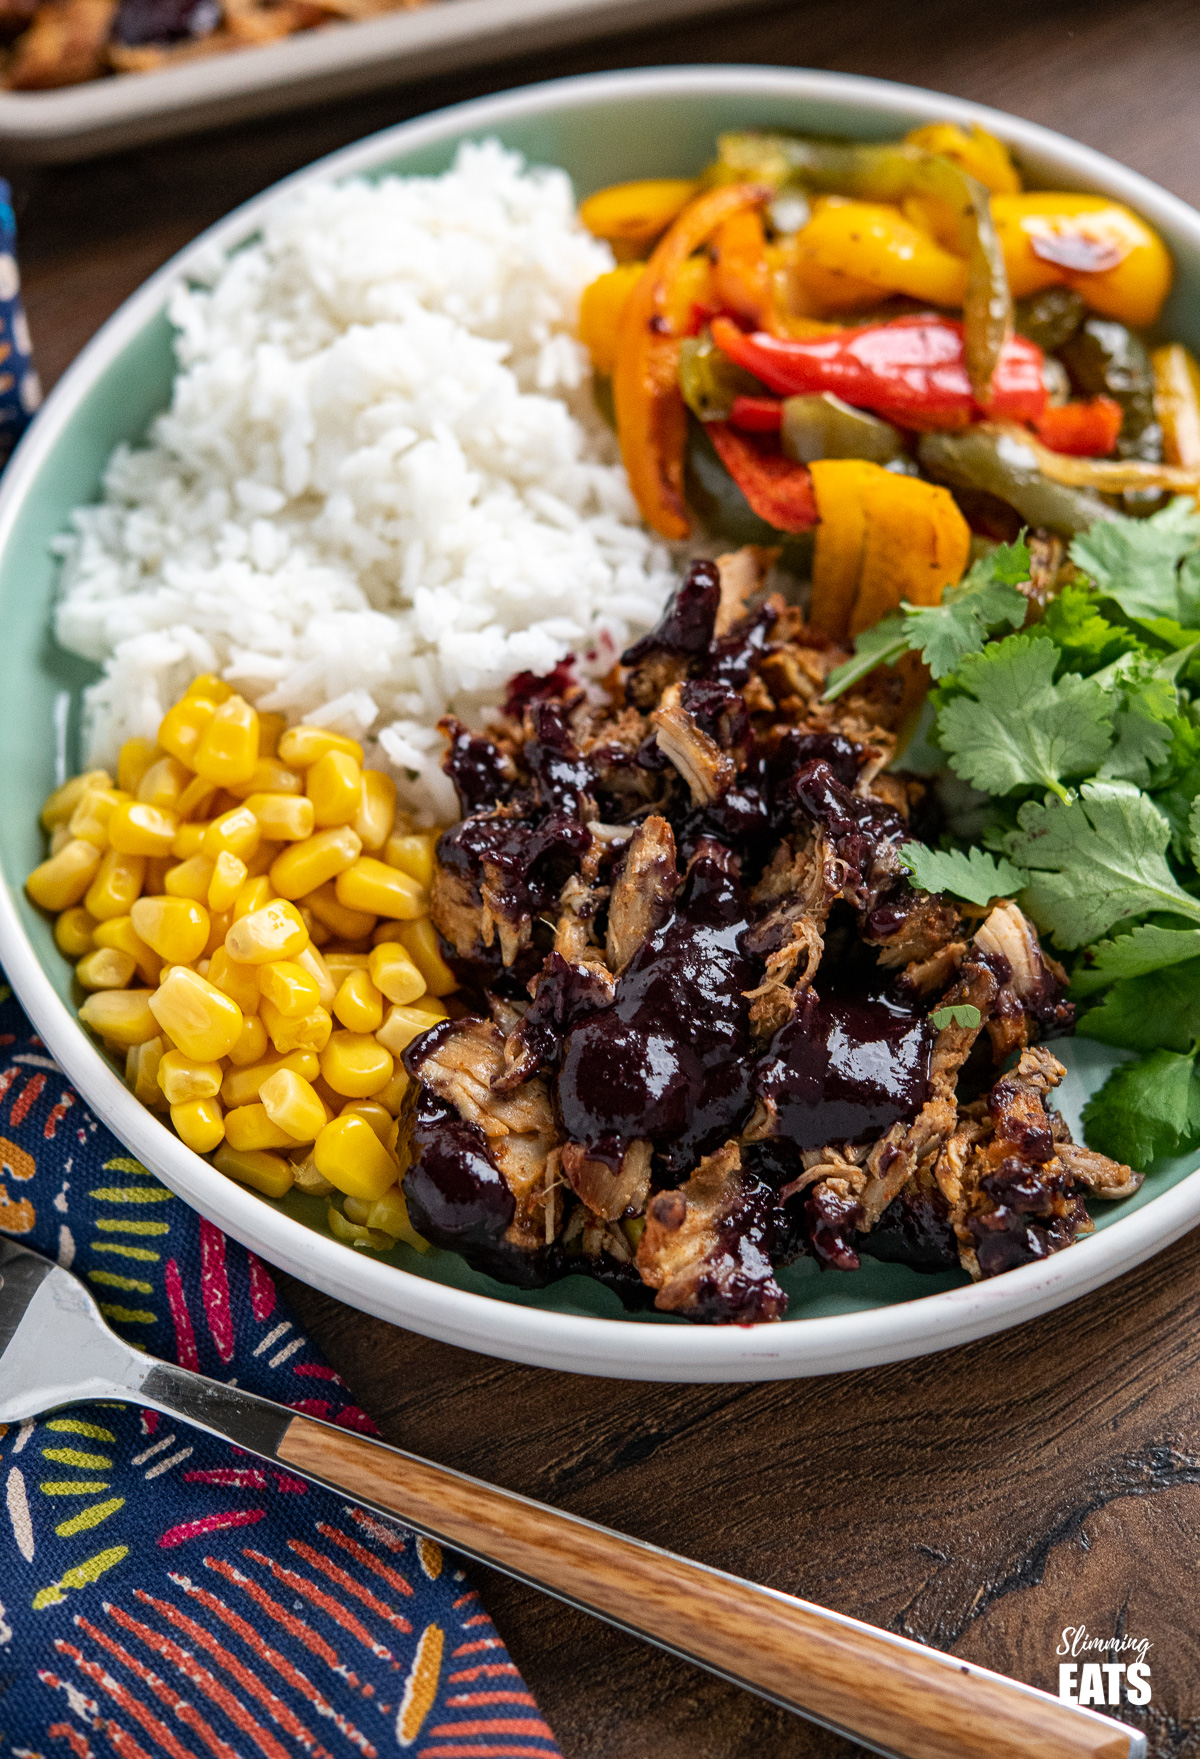 close up of Pulled Pork with Blueberry BBQ sauce on teal plate with rice, corn, coriander and peppers